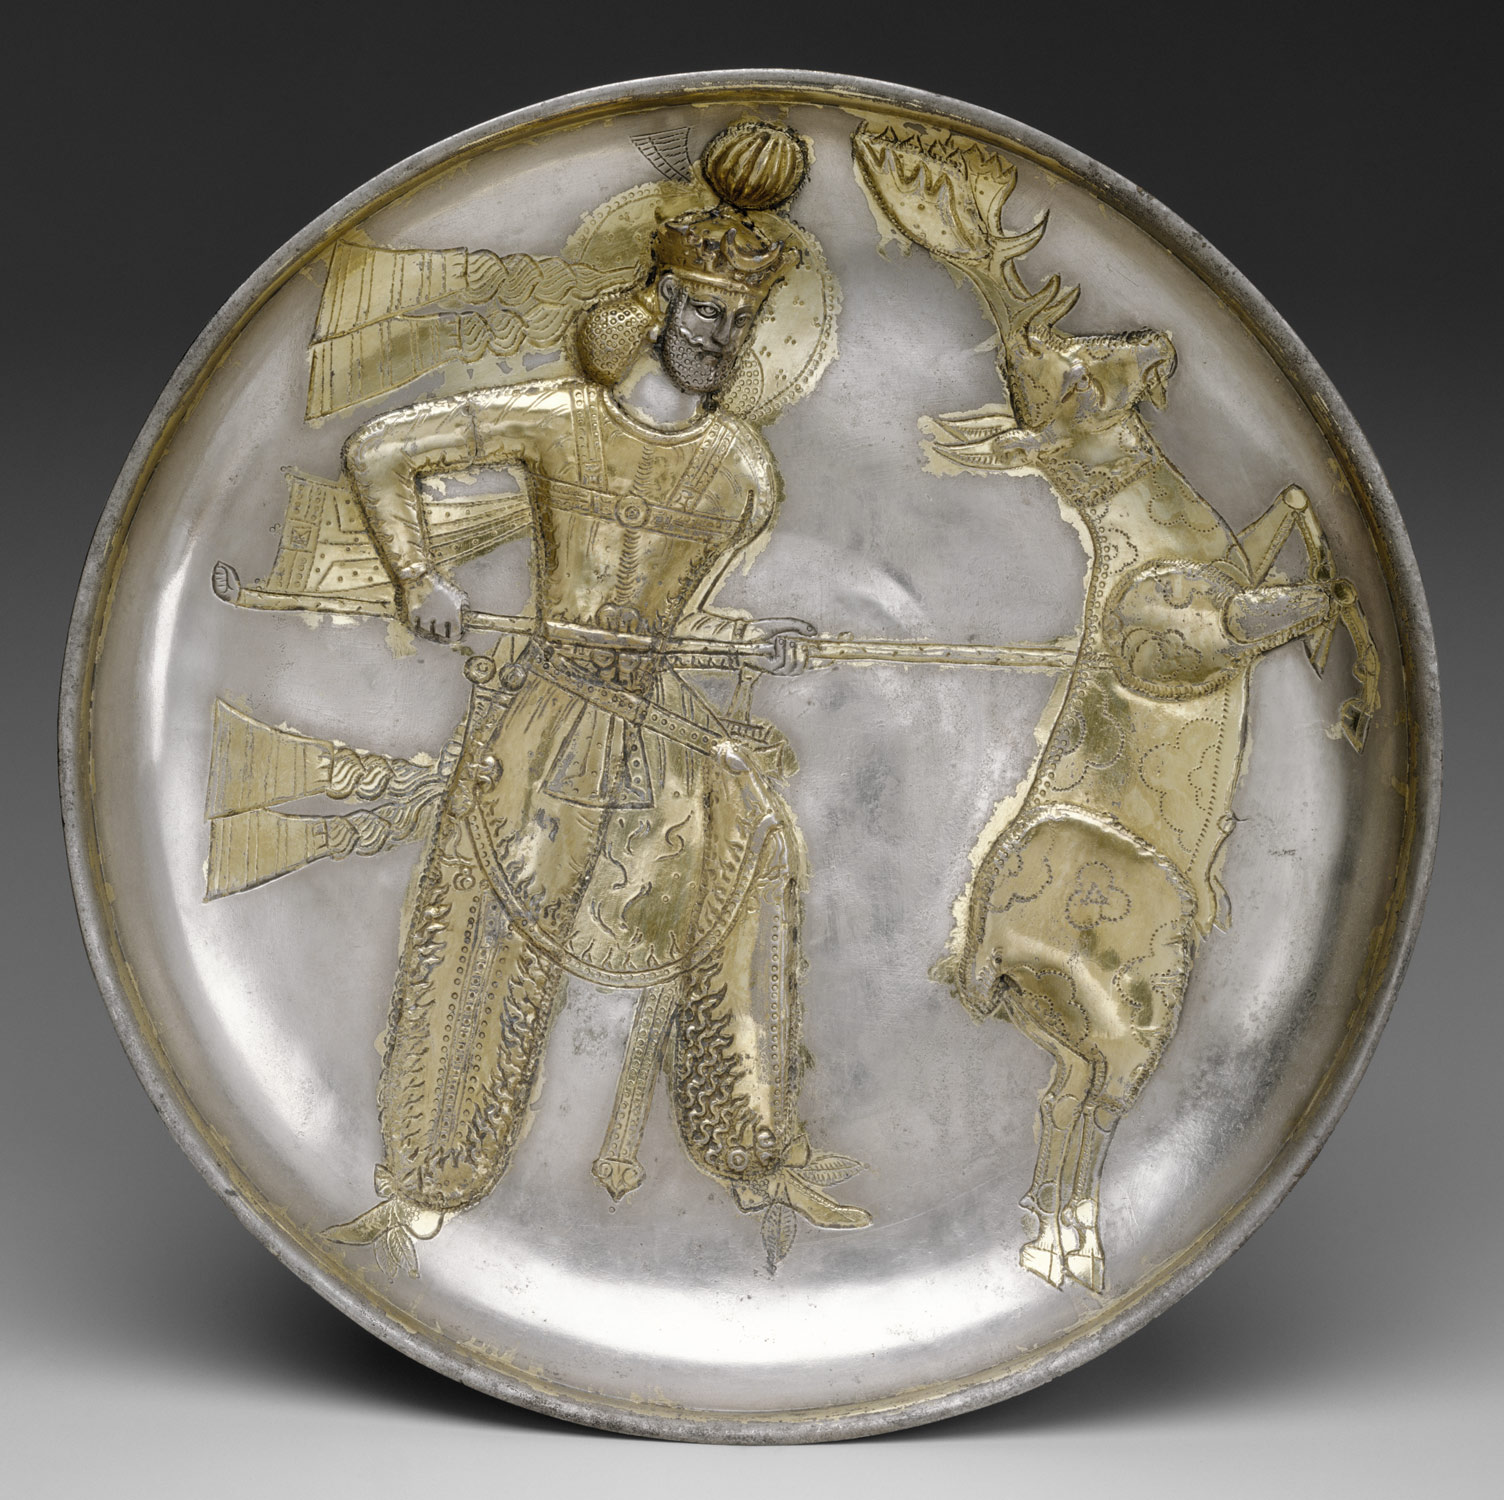 Plate: the king Yazdgard I, slaying a stag